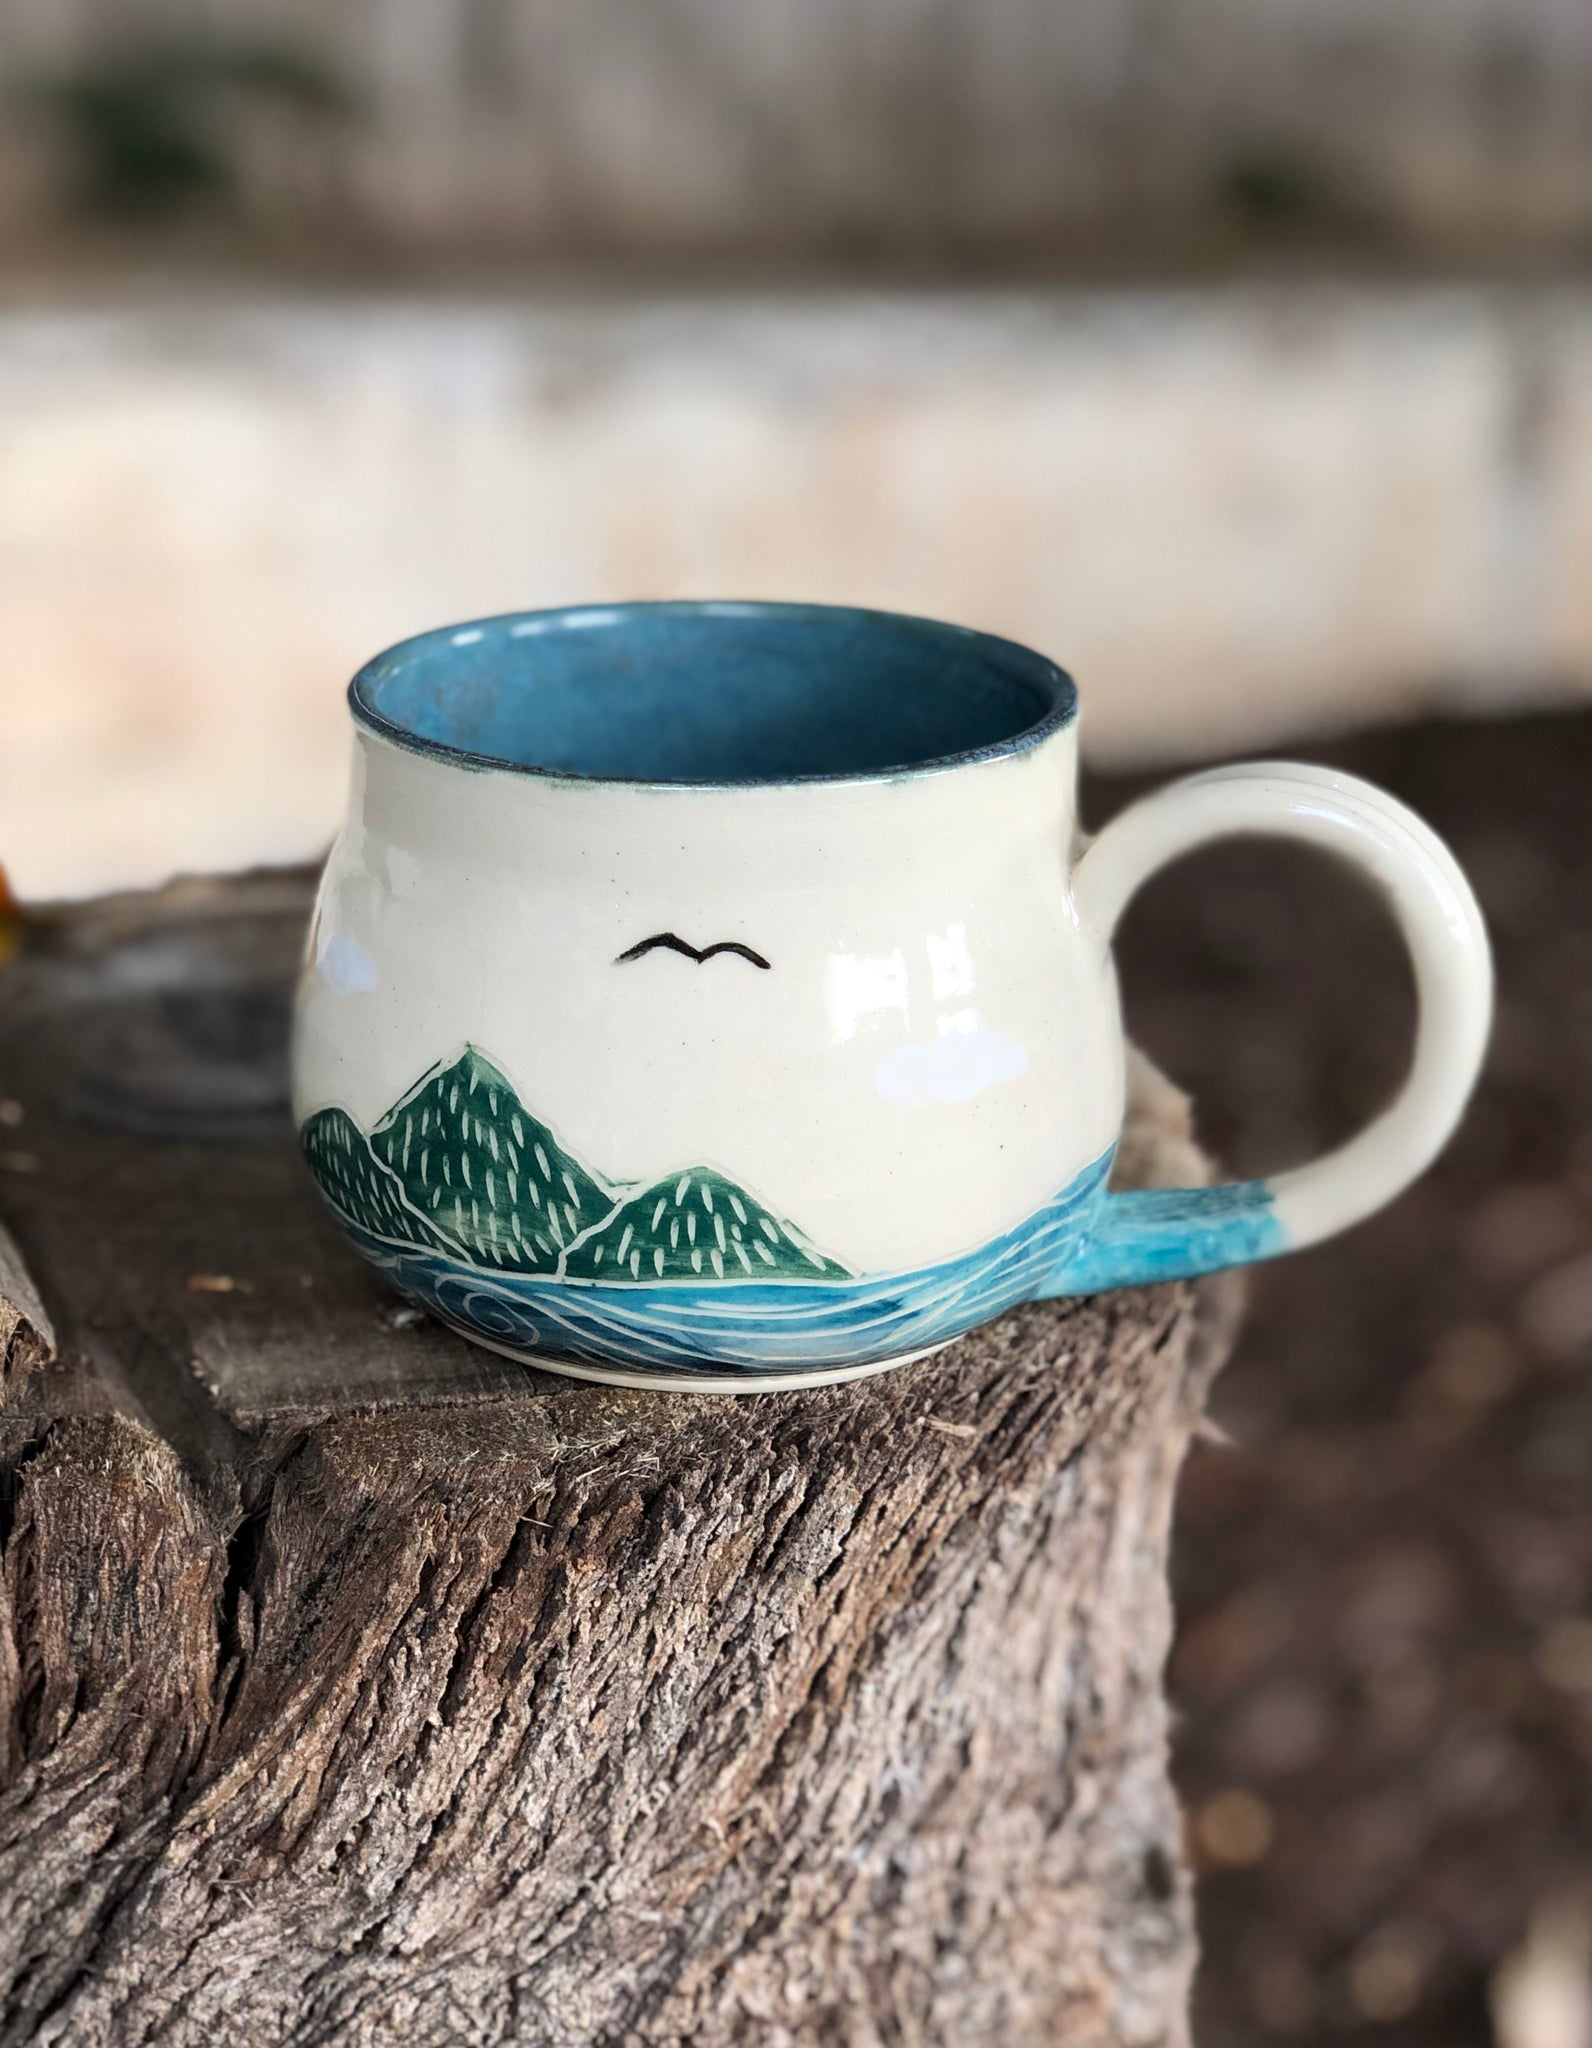 Ocean Series N 12 Handmade Ceramic Mug Hand Painted Sun And Ocean 12 Oz Hsiaowan Studios